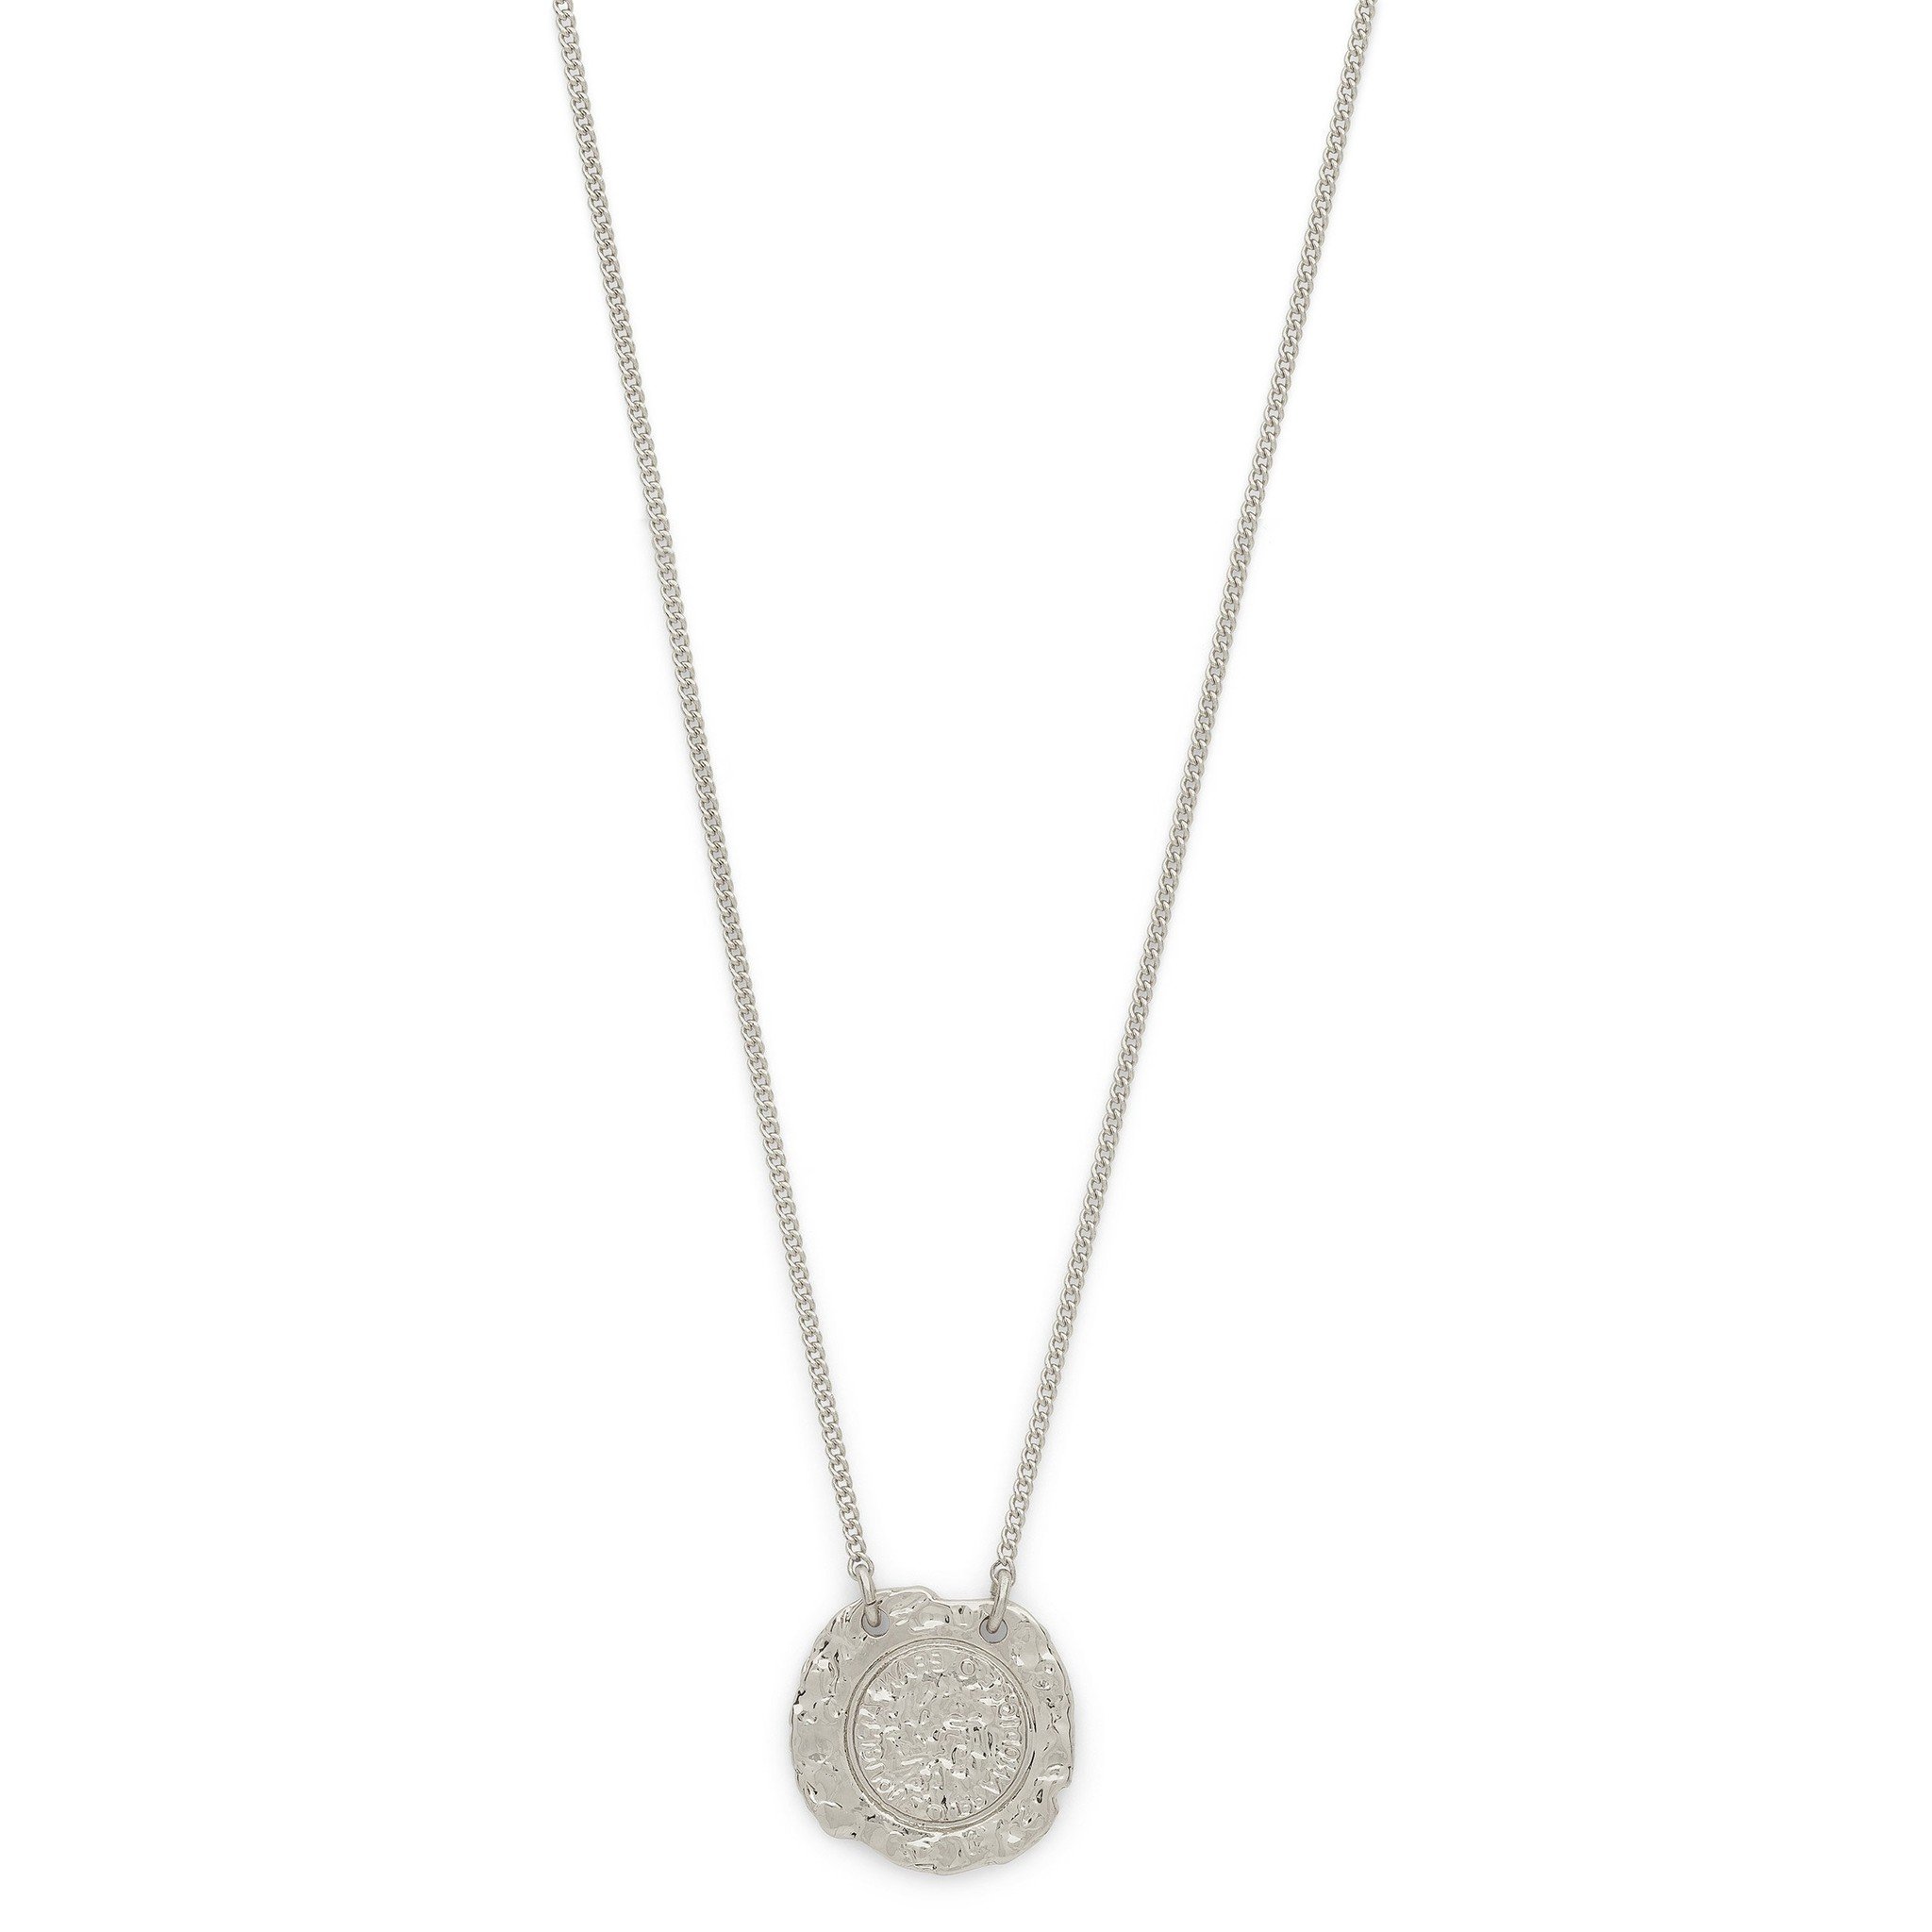 Pilgrim Pilgrim Marley Silver Coin Necklace